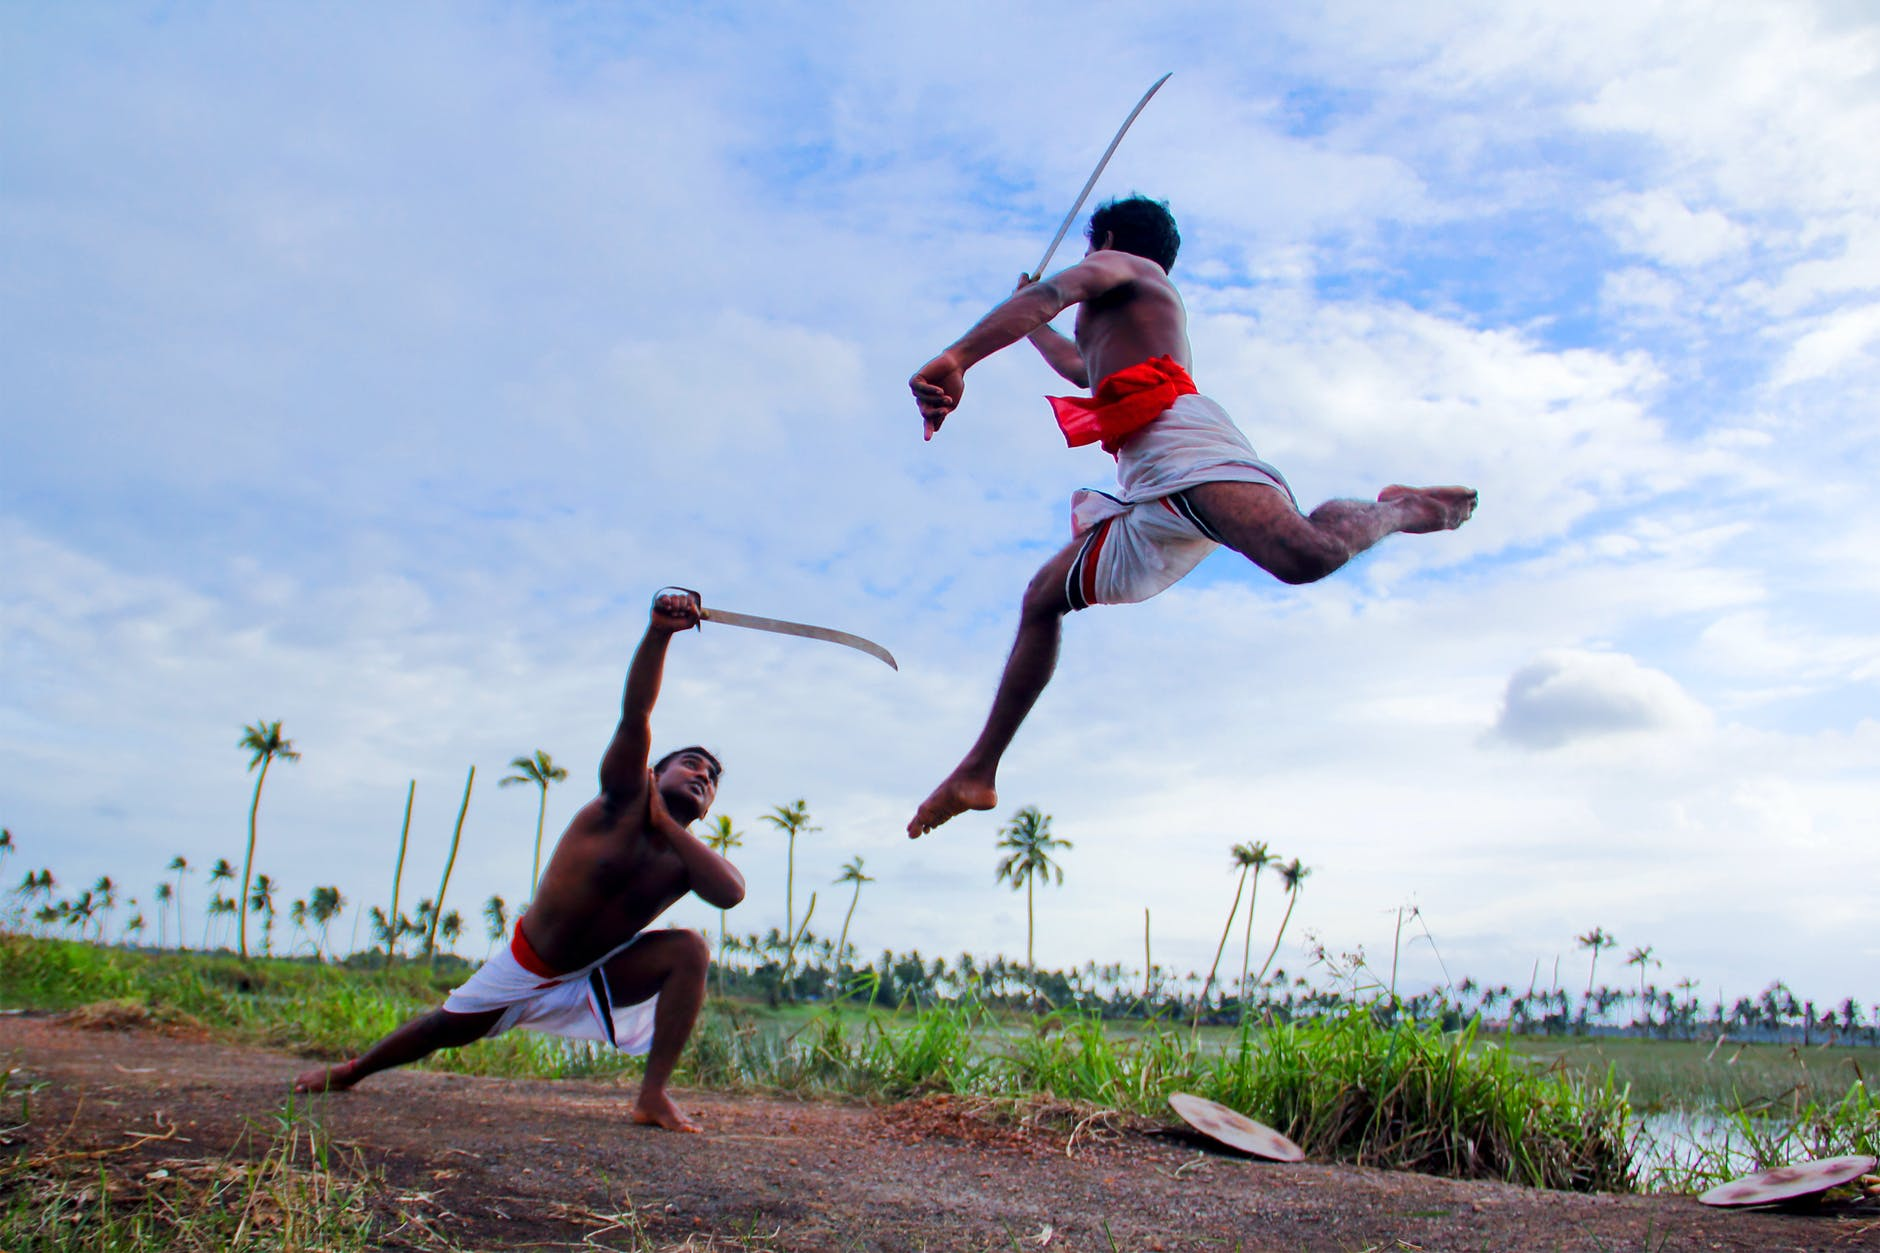 Kalaripayattu performed in a greenery area